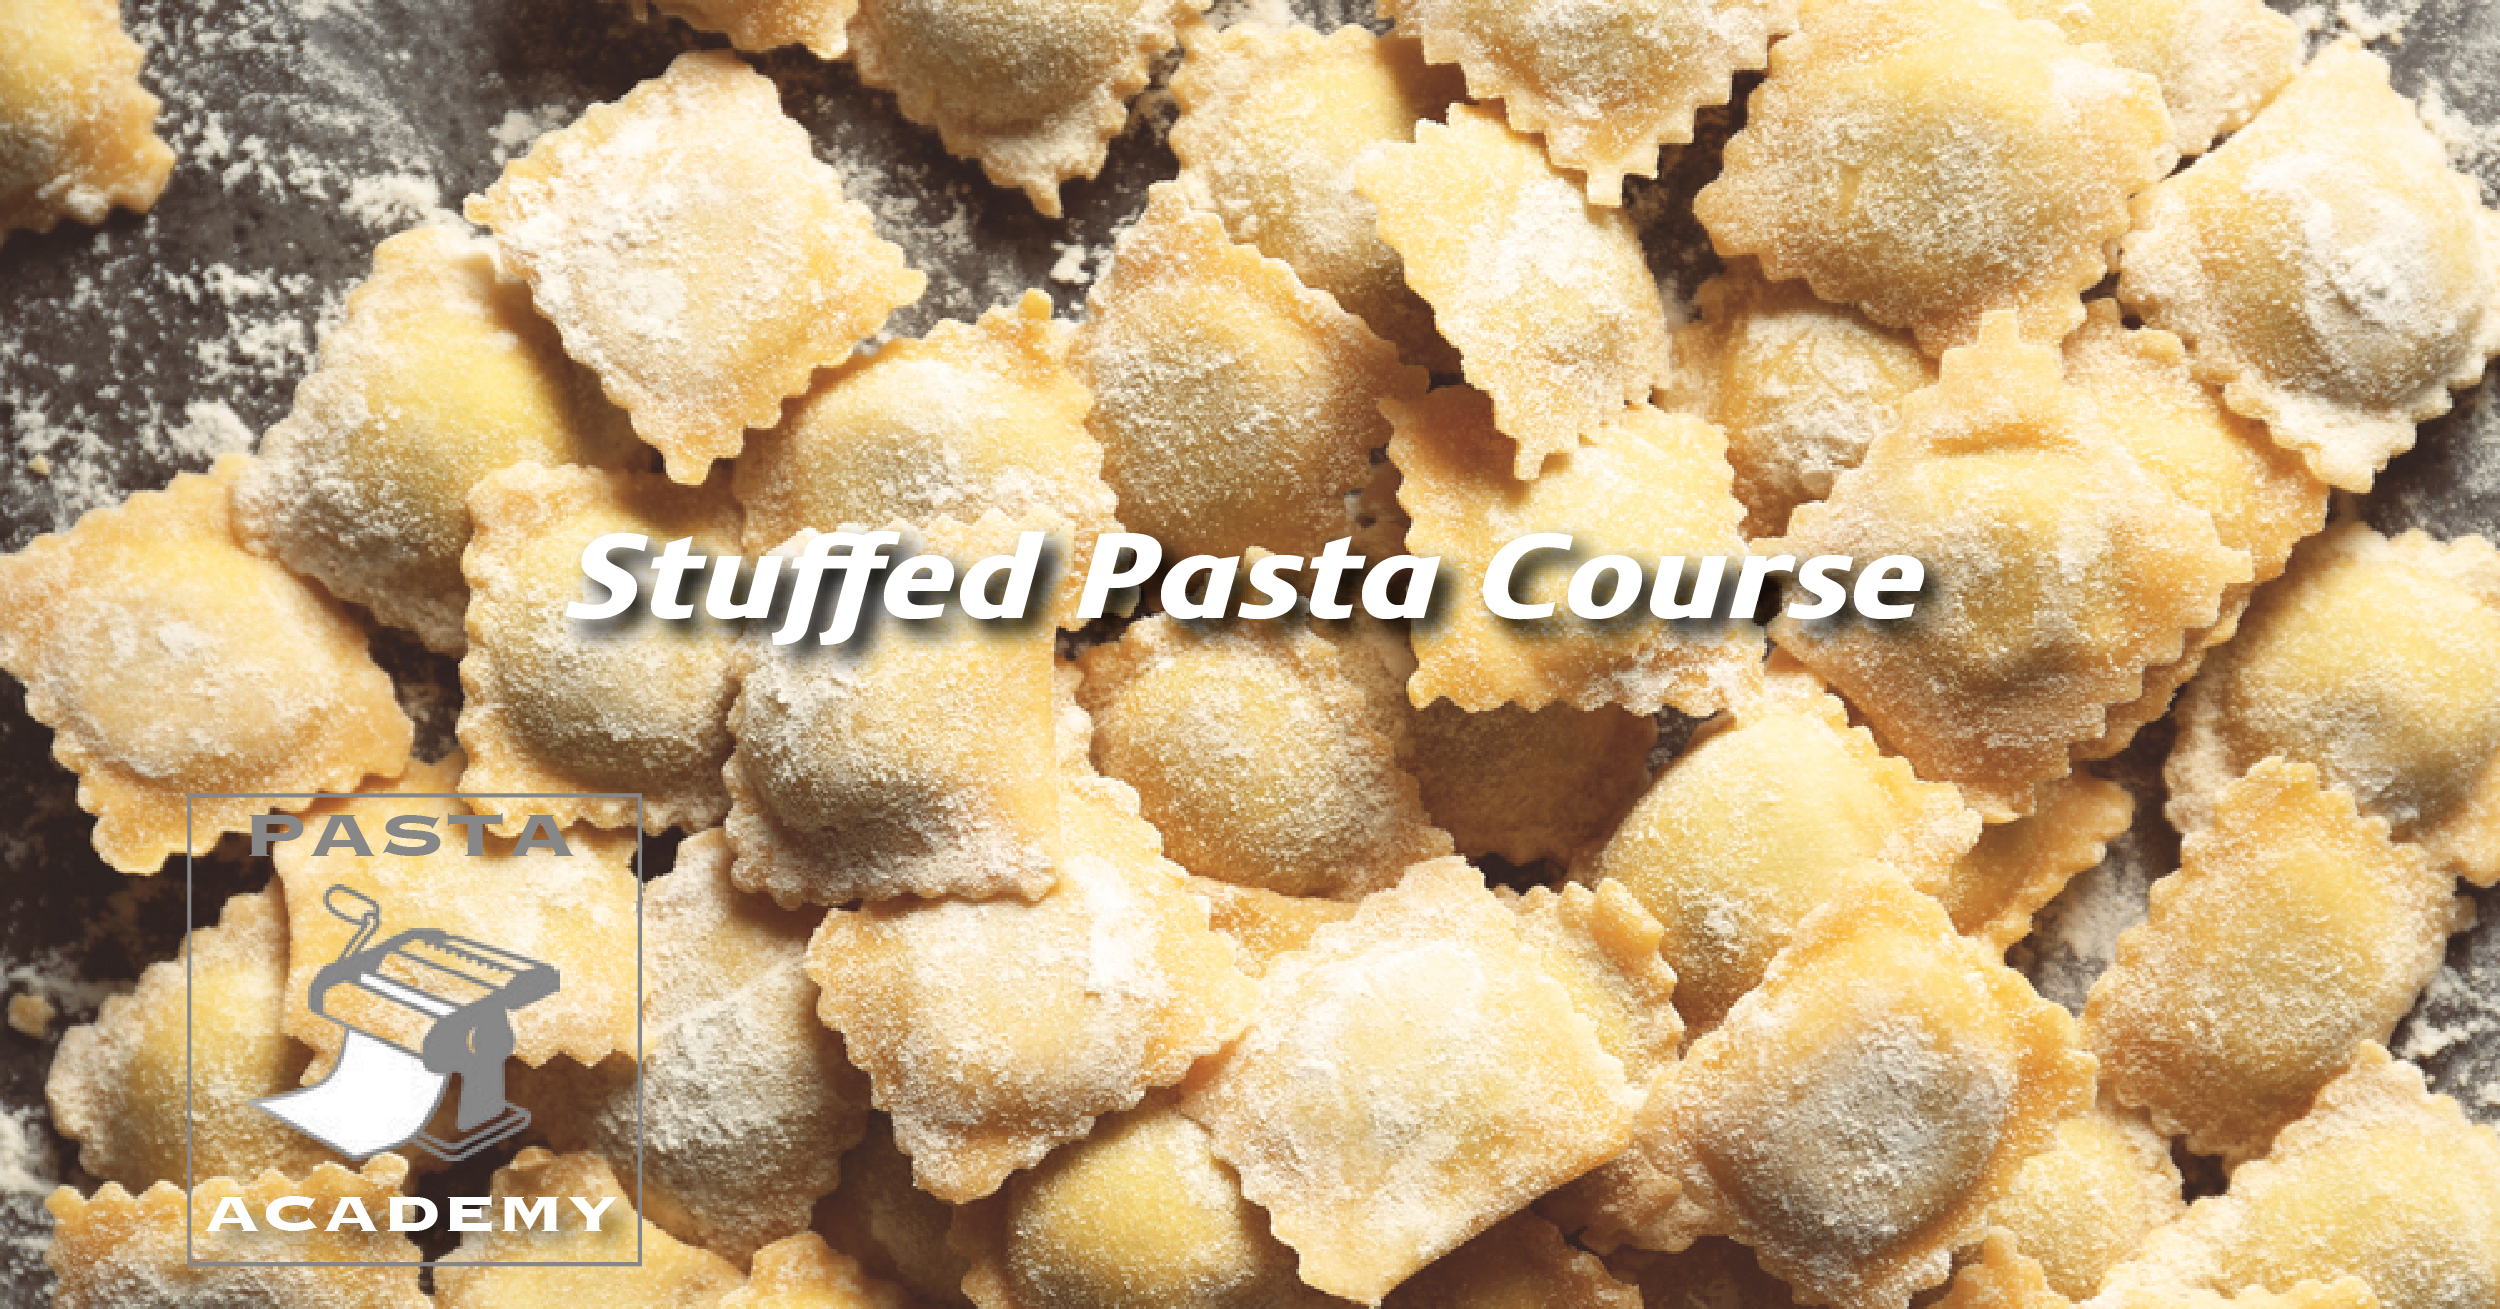 Consumer - Stuffed Pasta Course   Learn the specifics of numerous types of pasta in the category, including tortellini, ravioli, mezzaluna and other similar types. Students will explore the different types of sauces, additions and garnishes that the pastas are commonly paired with.